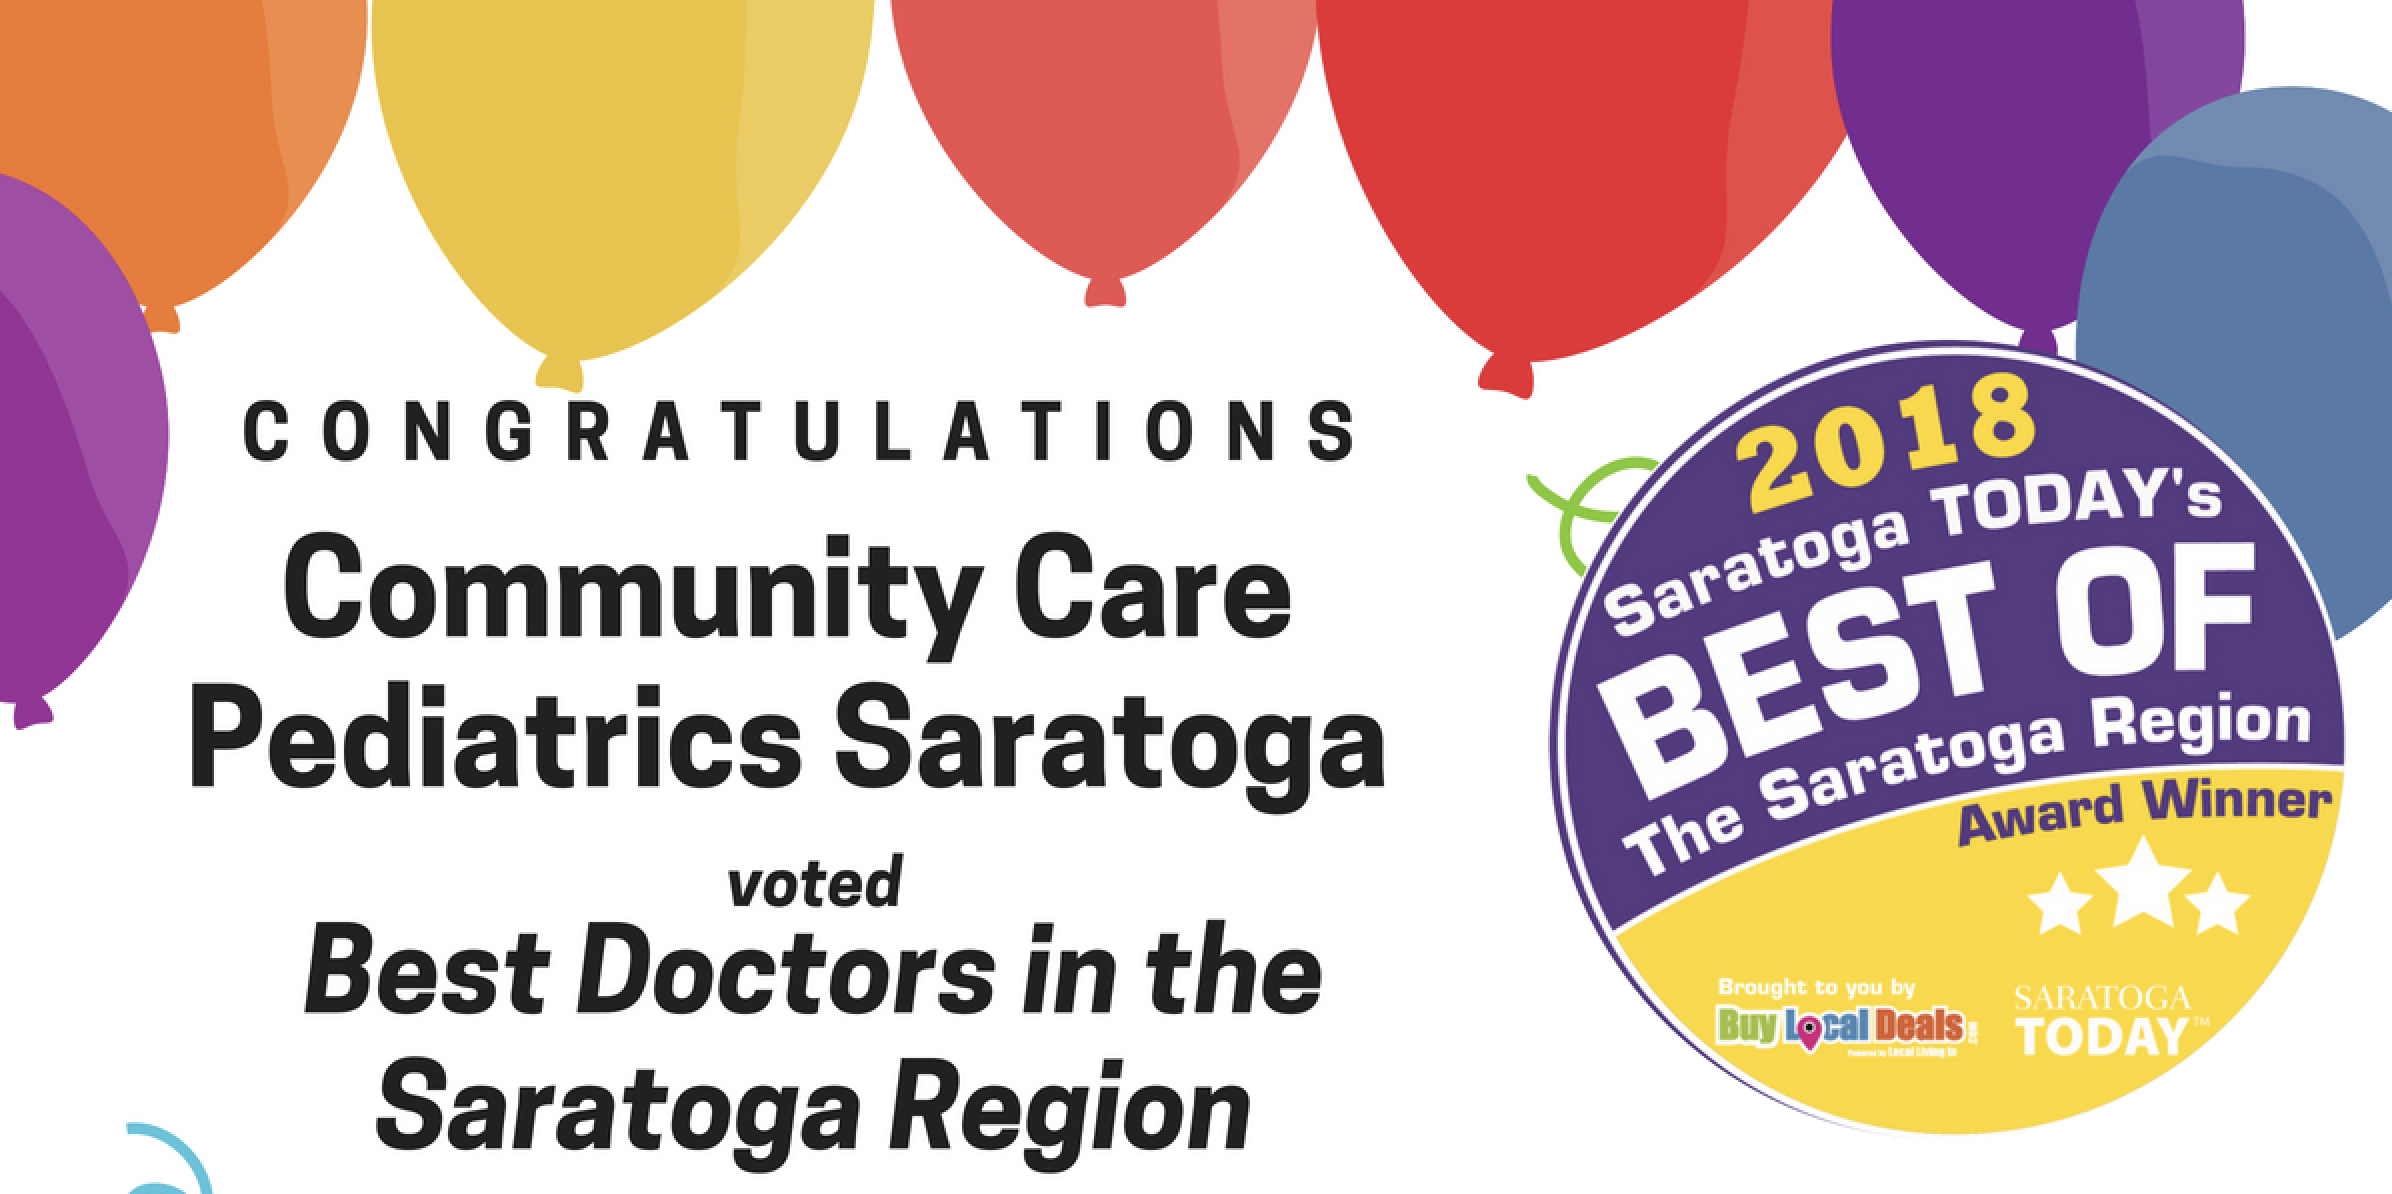 Community Care Pediatrics - Saratoga voted the